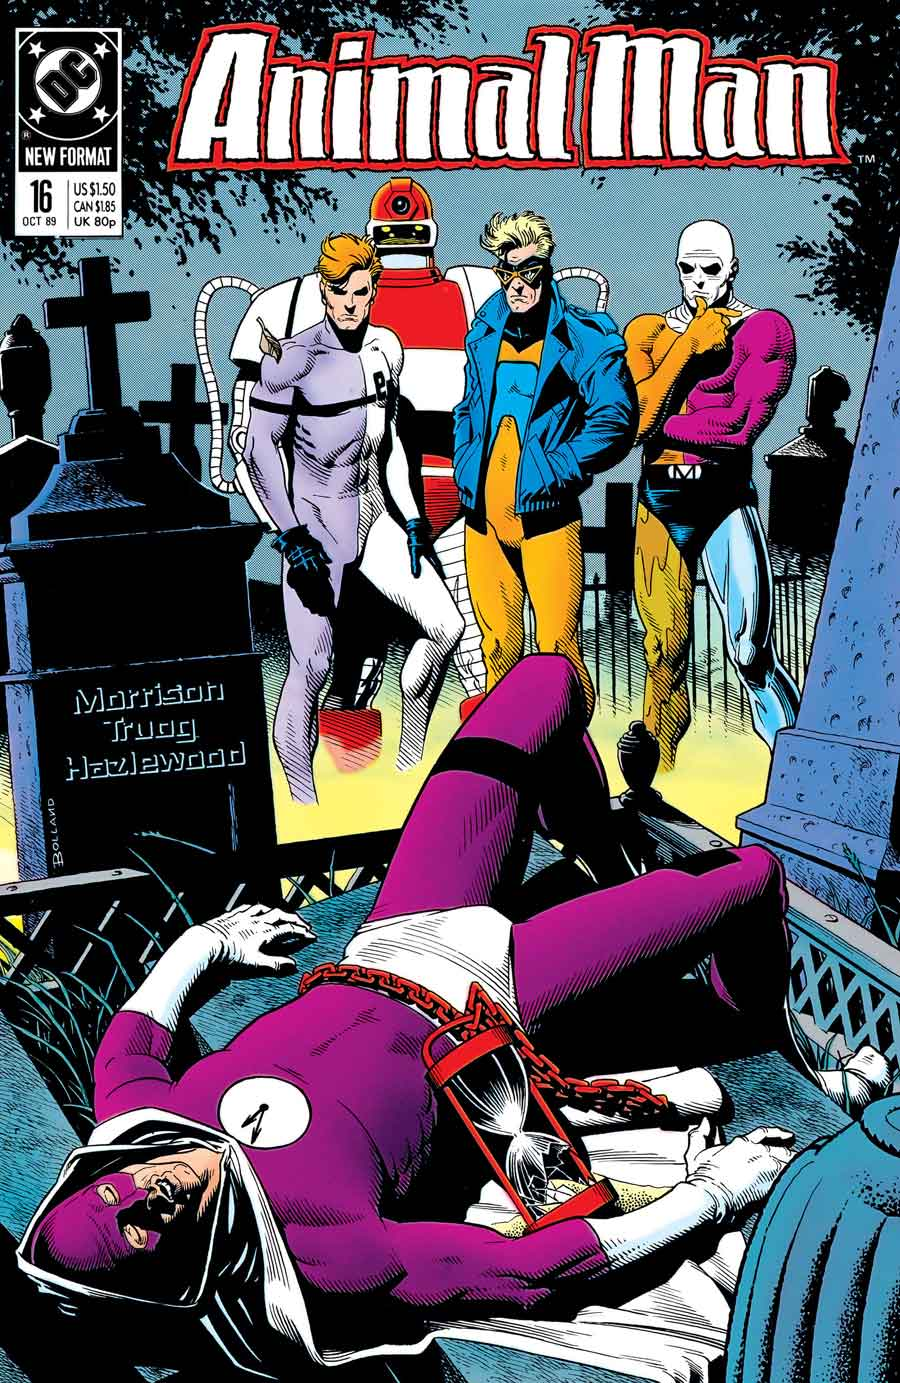 Animal Man #16 cover by Brian Bolland